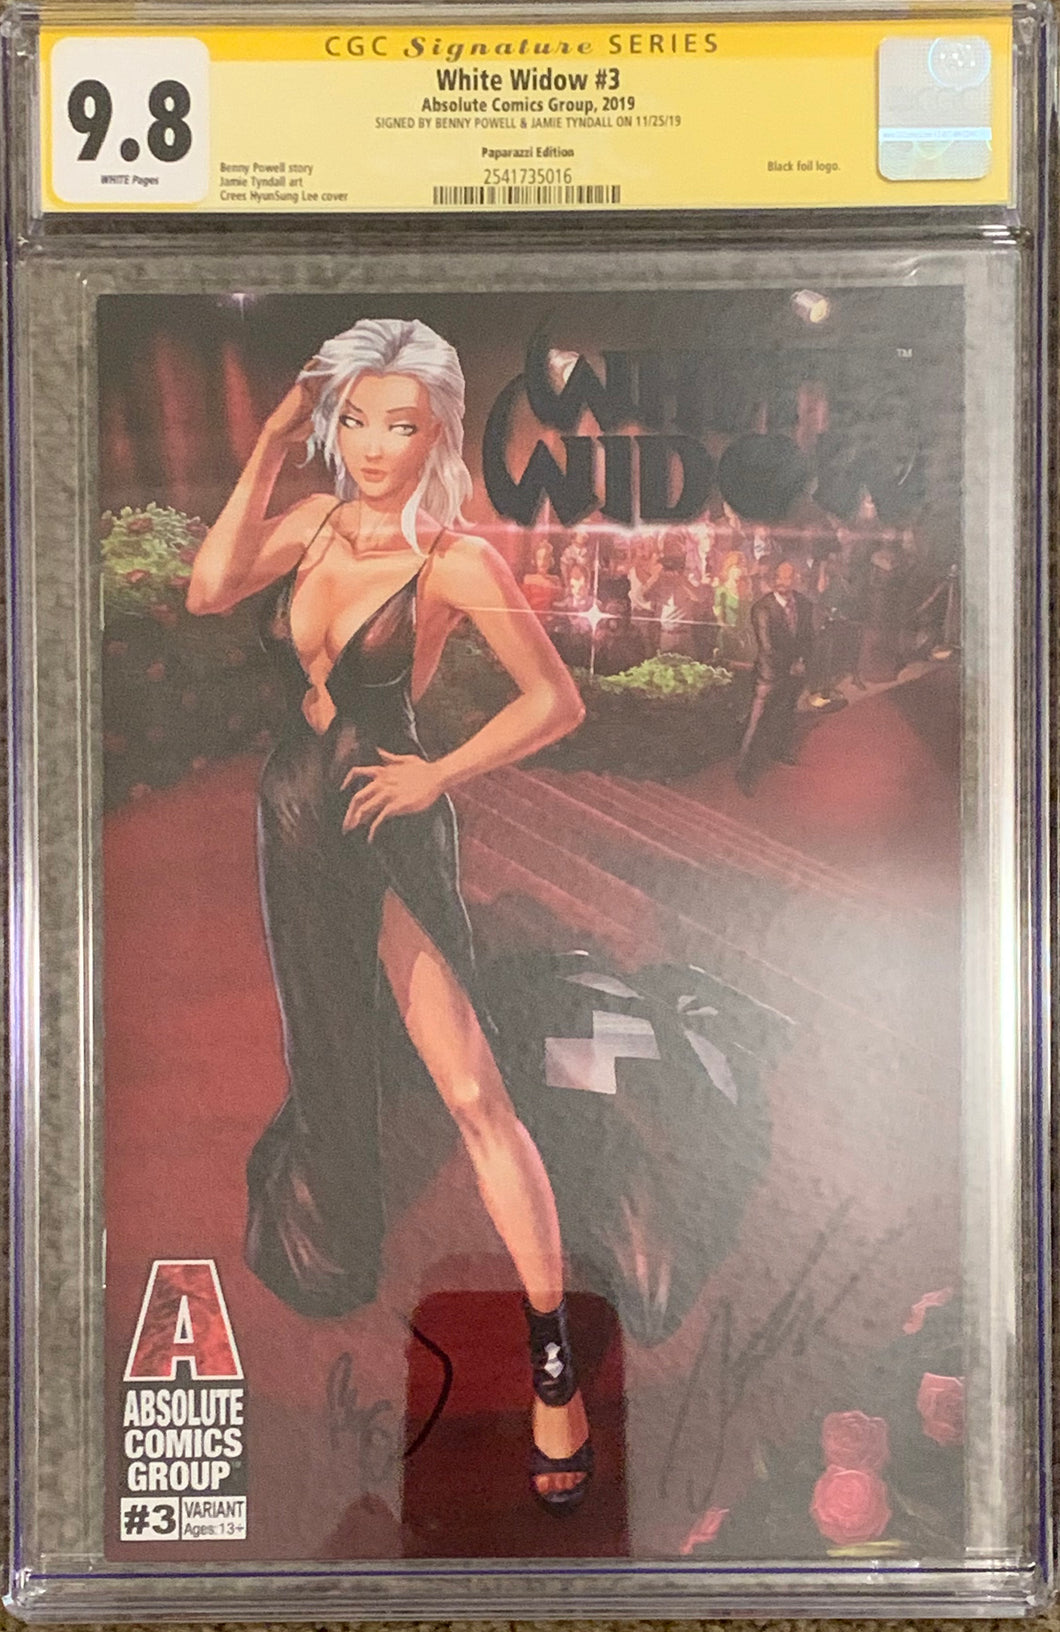 White Widow #3F 9.8 CGC Yellow Label - Paparazzi- Signed